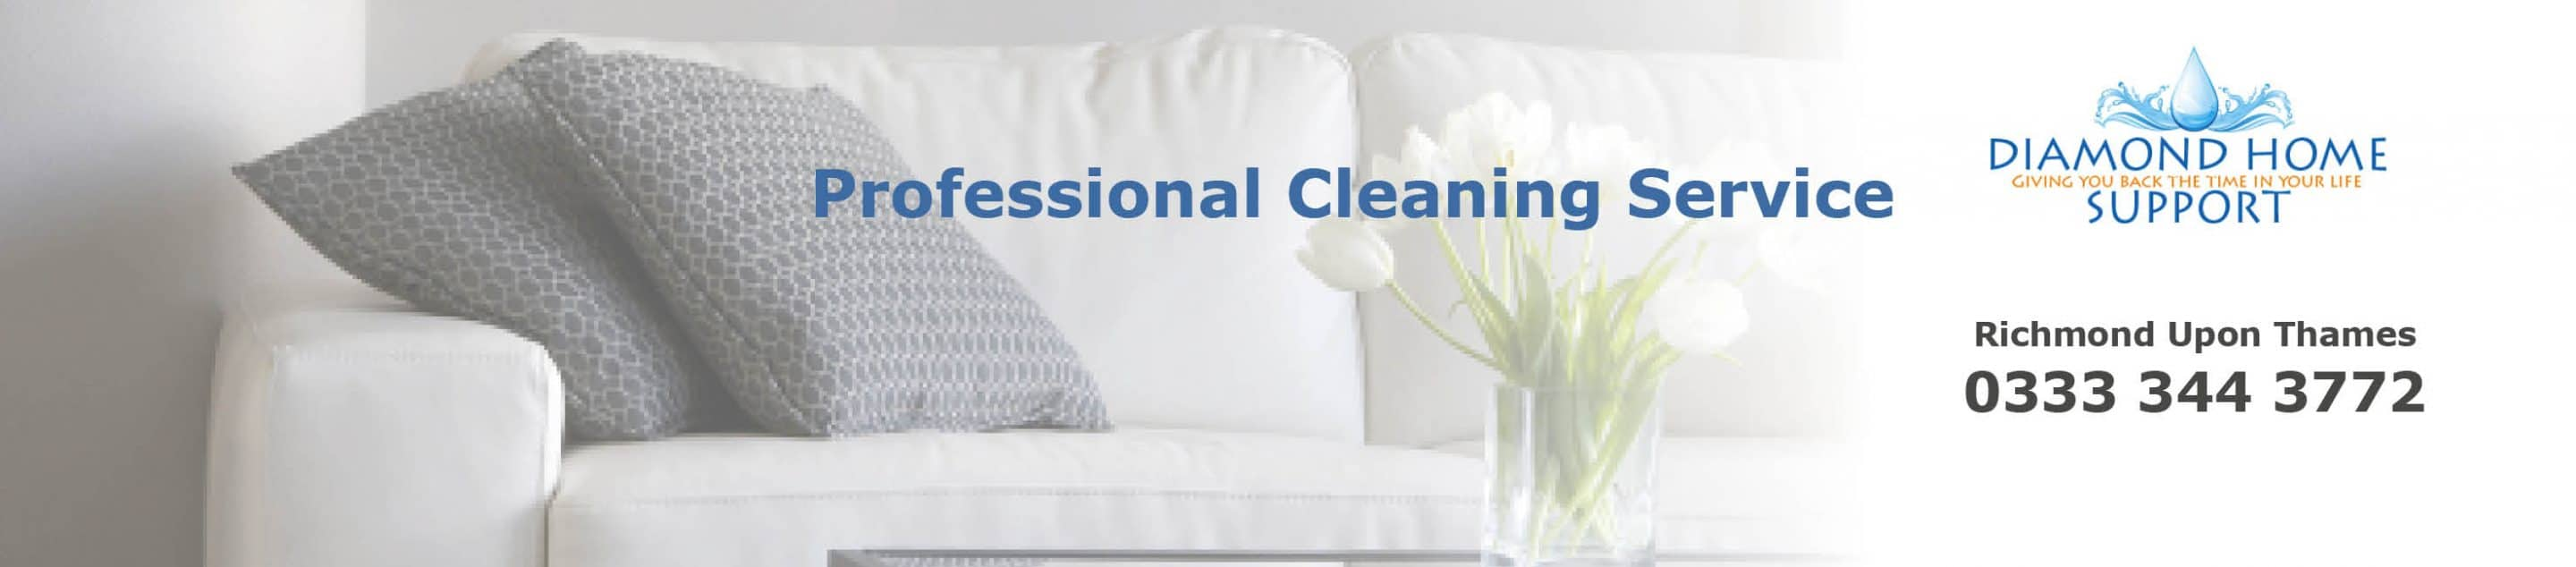 Cleaners in Richmond Upon Thames